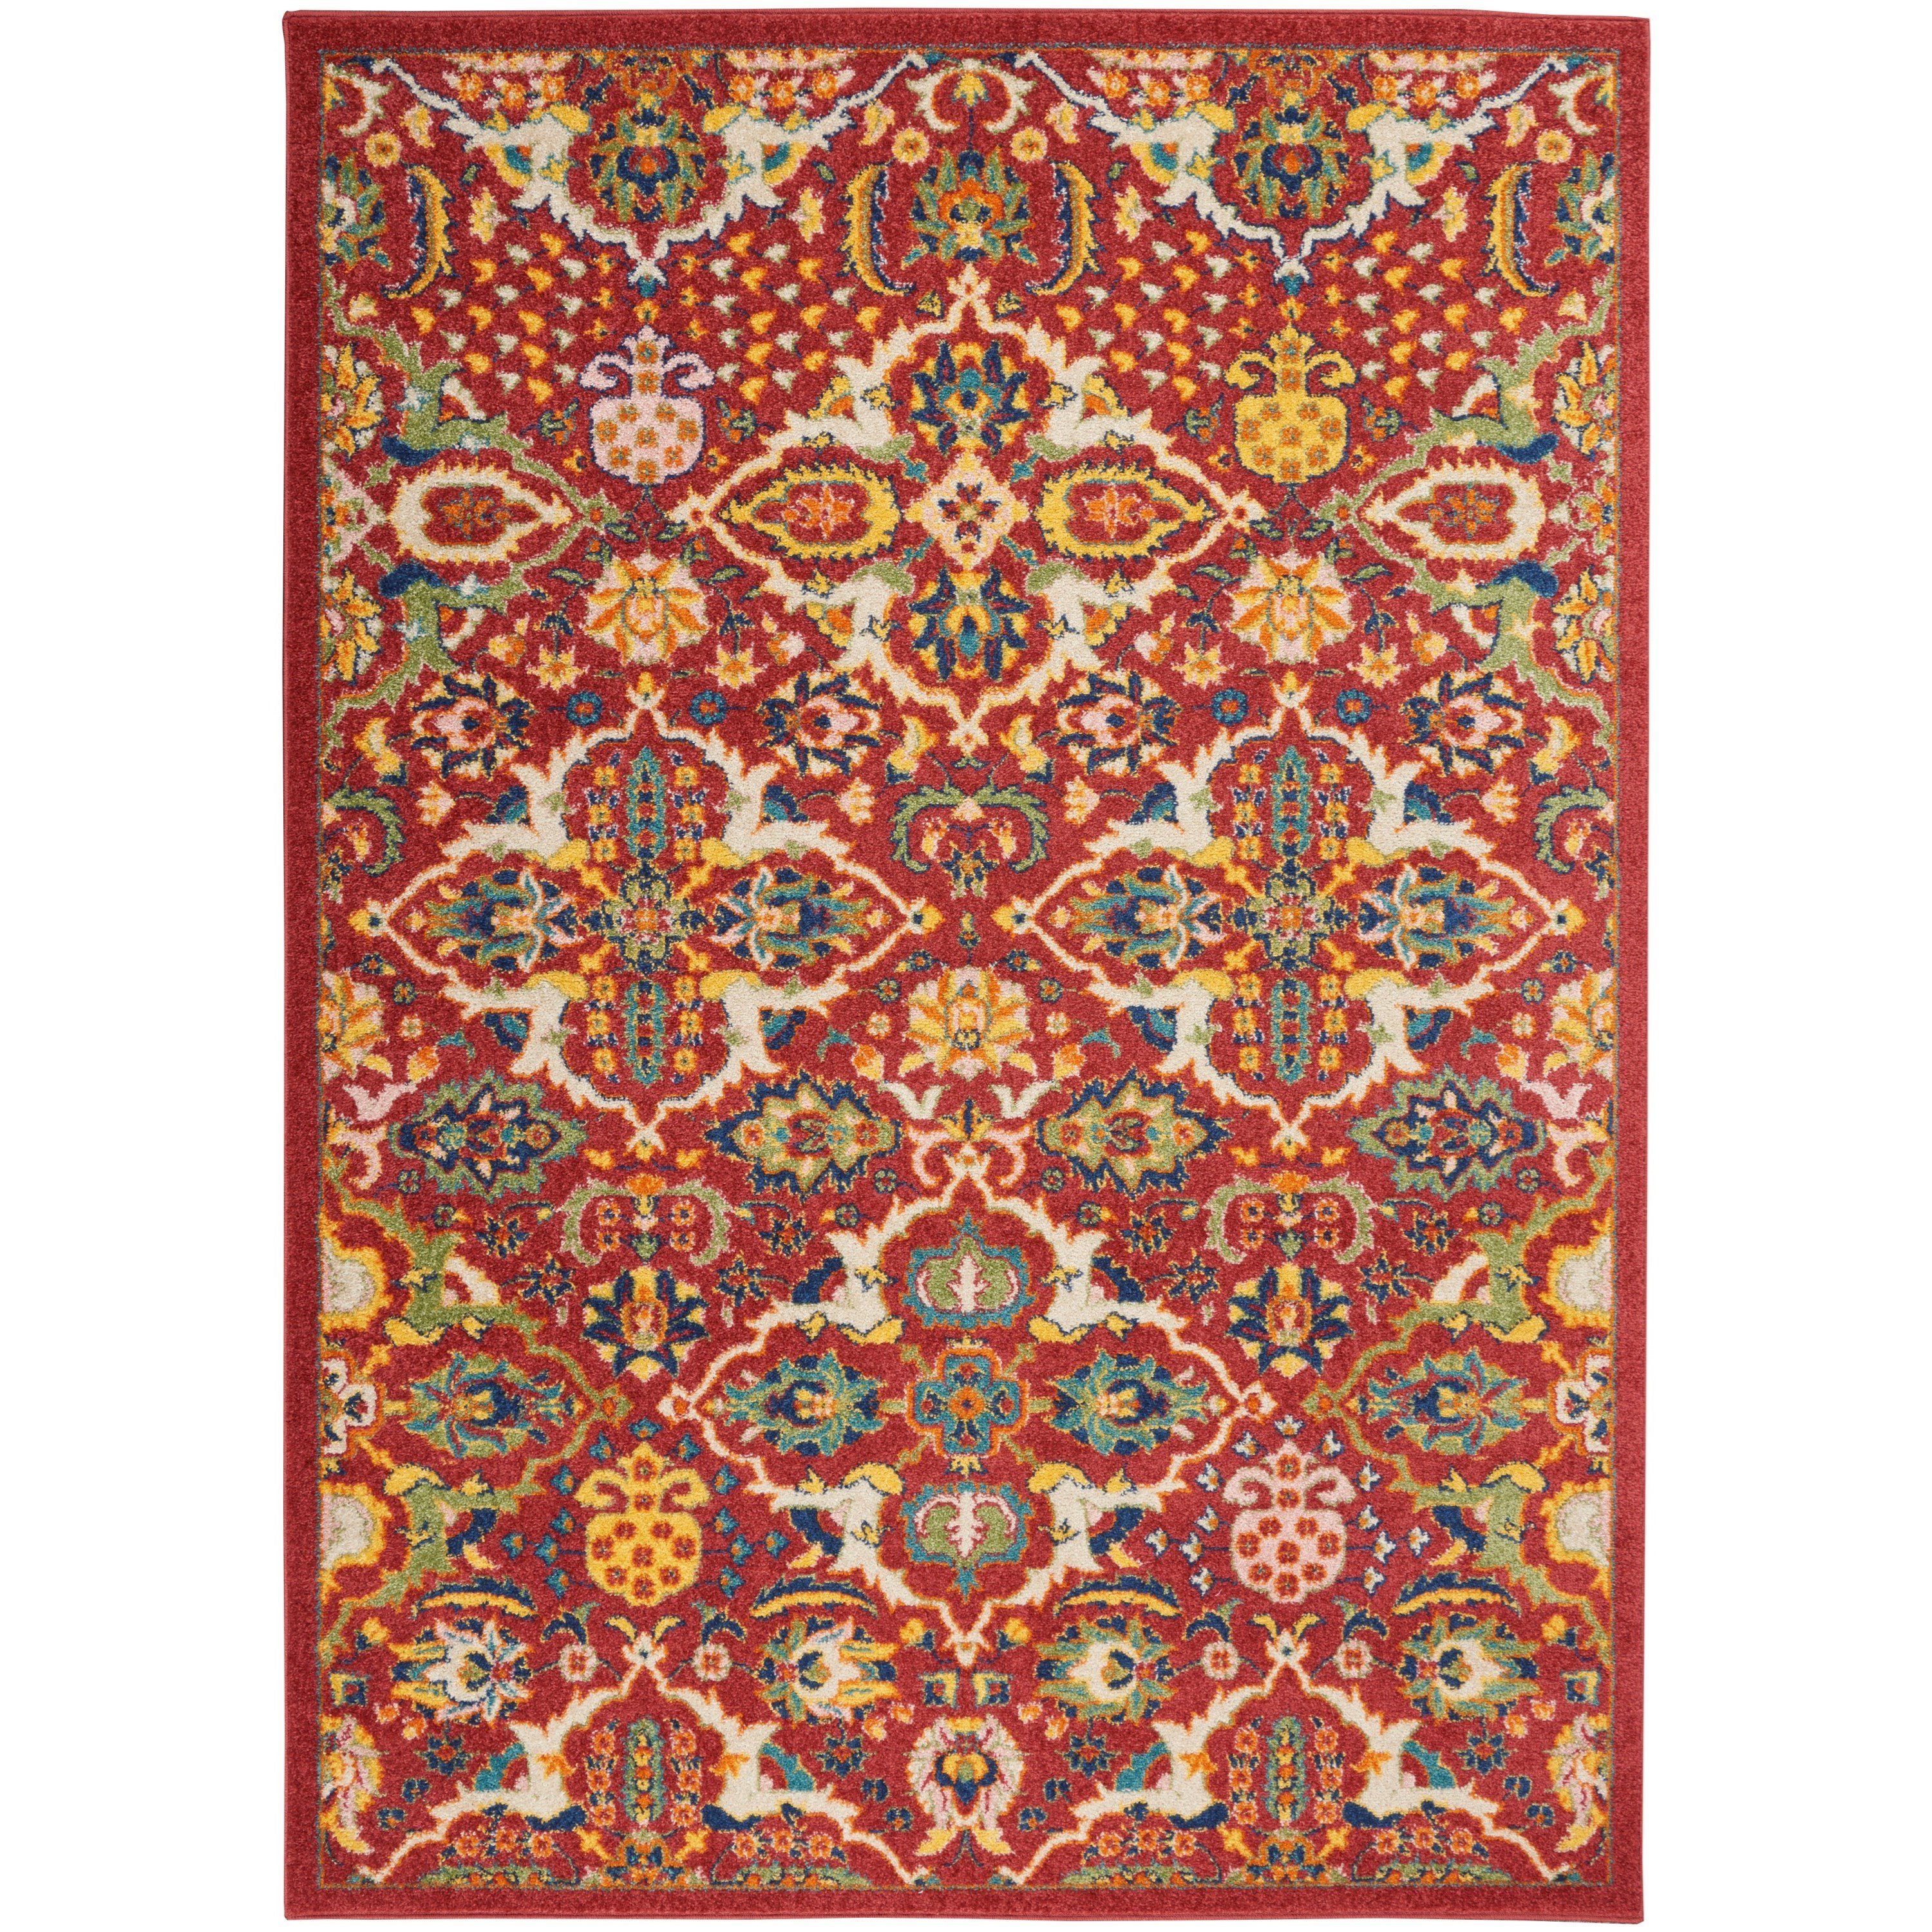 Allur 2020 5' x 7' Rug by Nourison at Sprintz Furniture